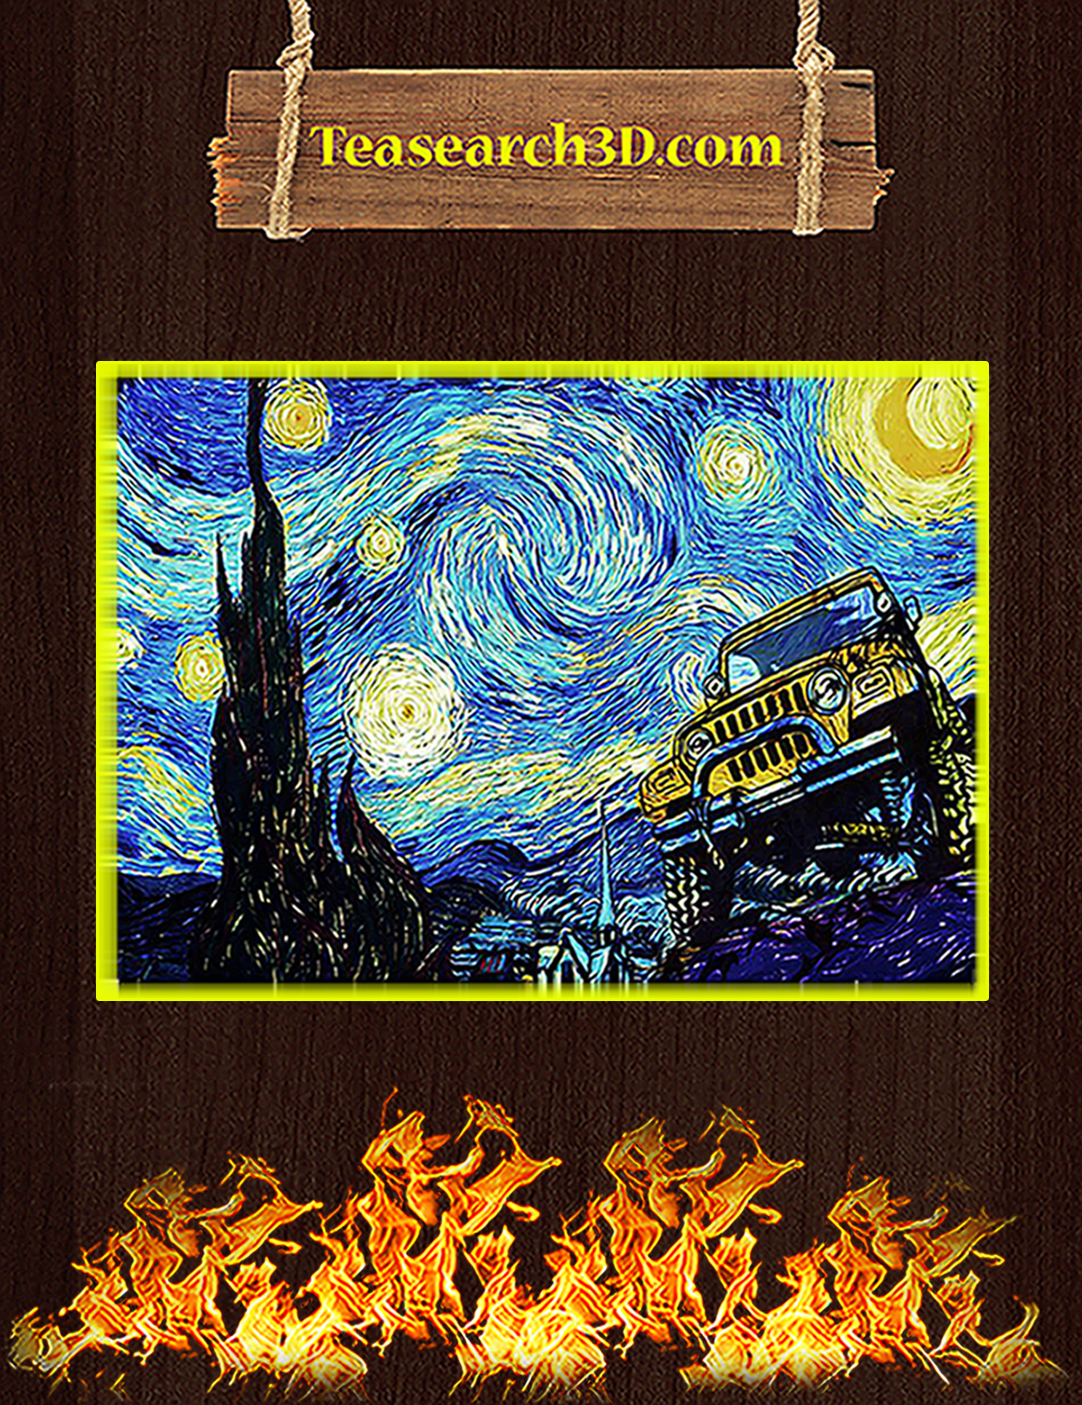 Jeep starry night van gogh poster A2